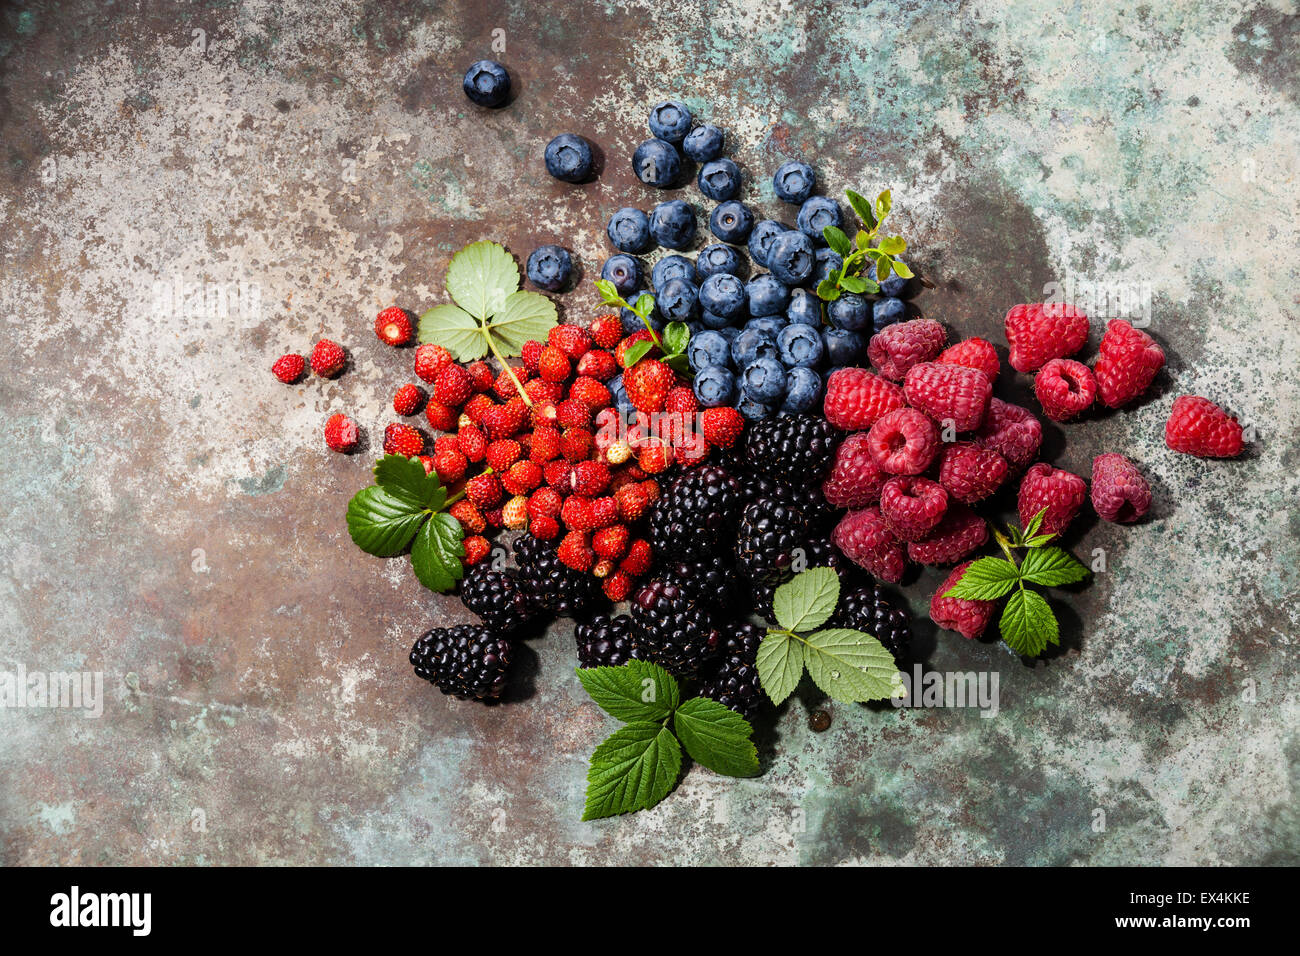 Assorted fresh berries with leaves on metal background - Stock Image